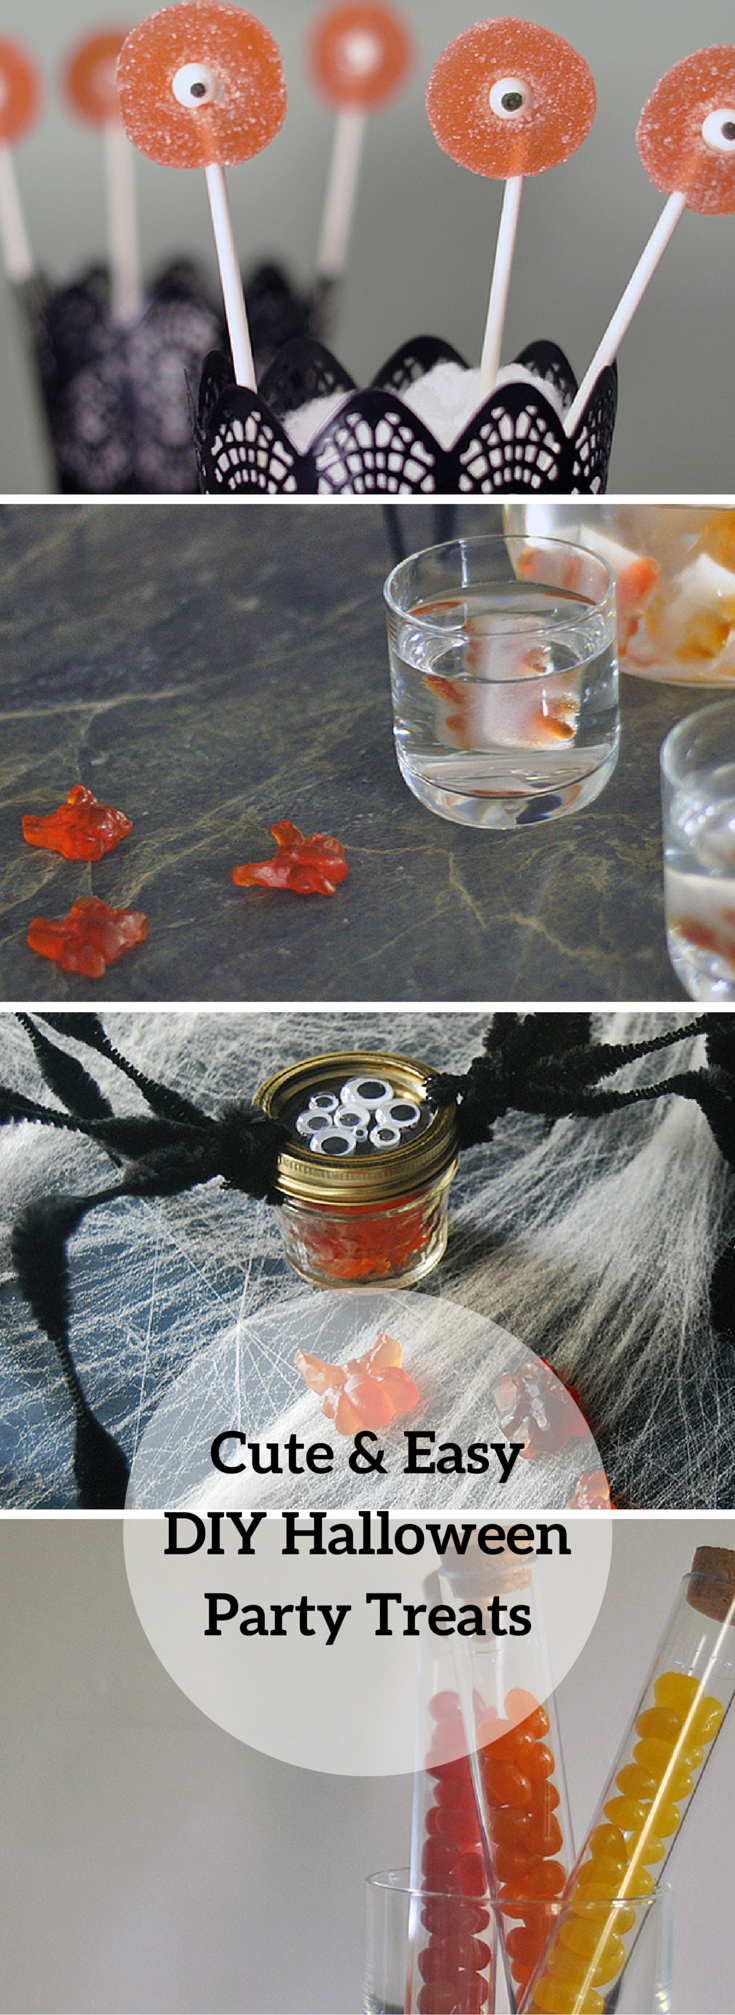 Easy, DIY nobake halloween party treats for kids and